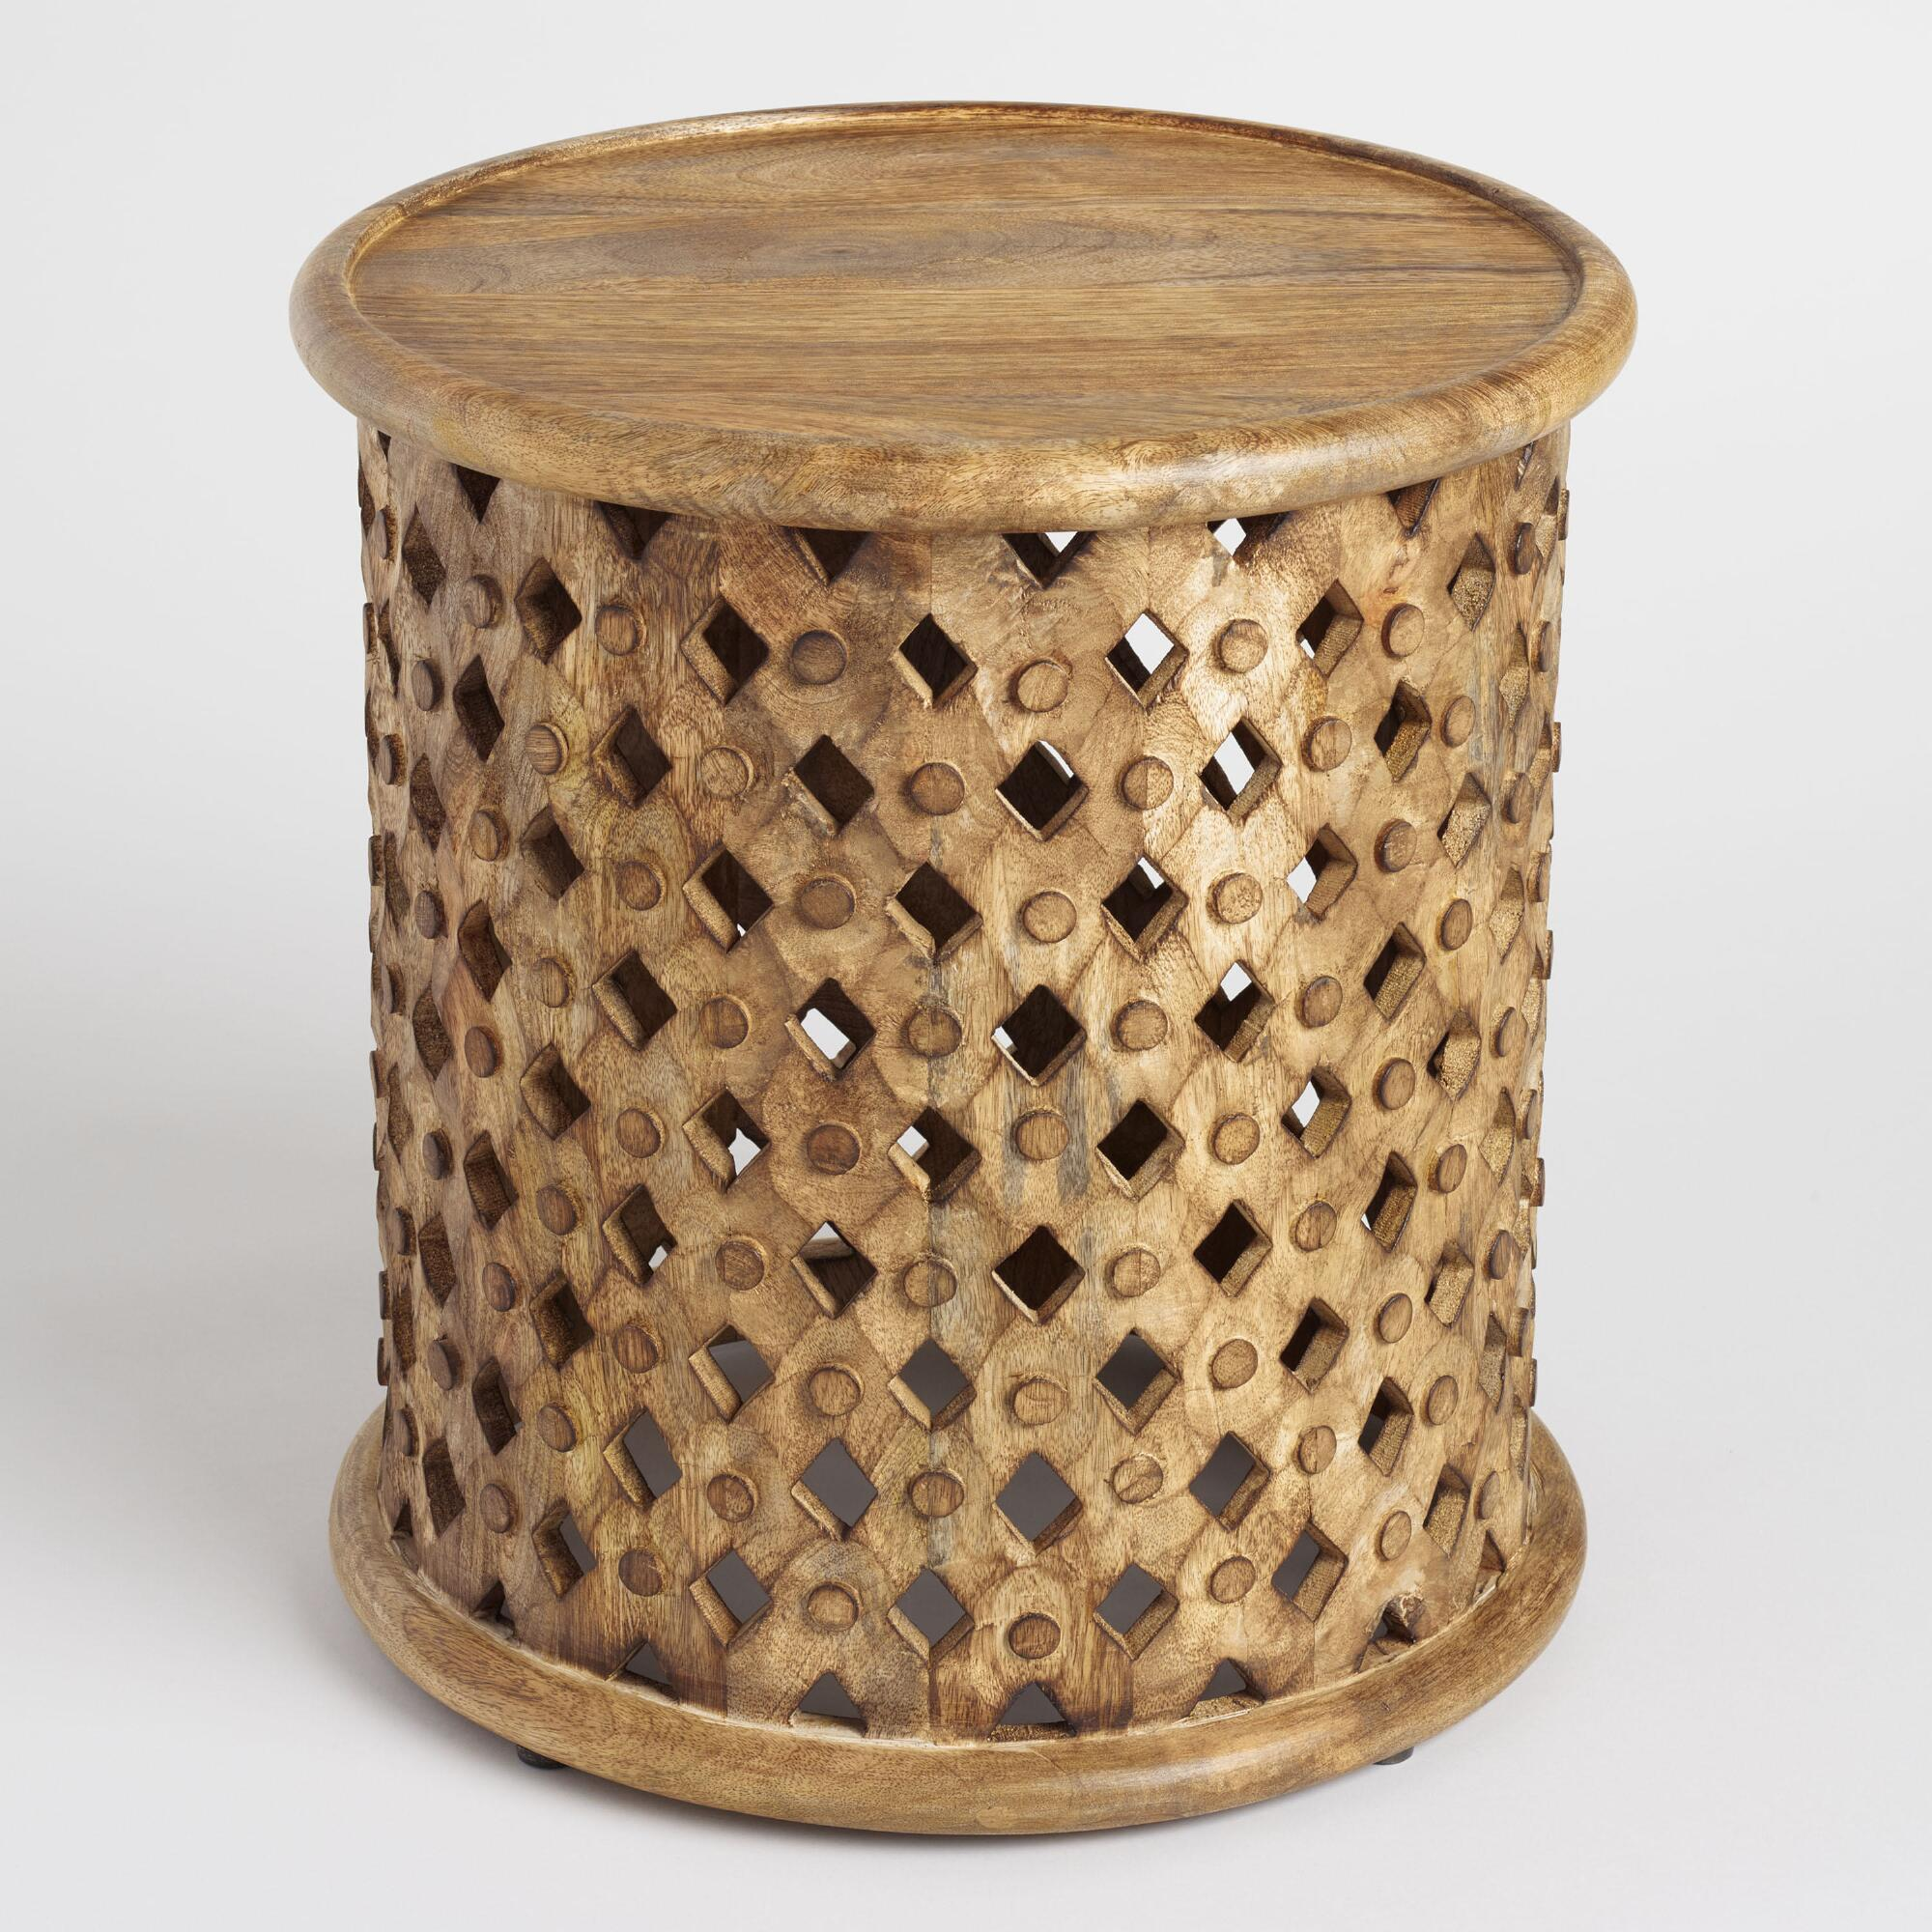 tribal carved wood accent table world market iipsrv fcgi modern farmhouse battery operated touch lamp adjustable linen company ikea storage shelf unit coffee set oversized comfy